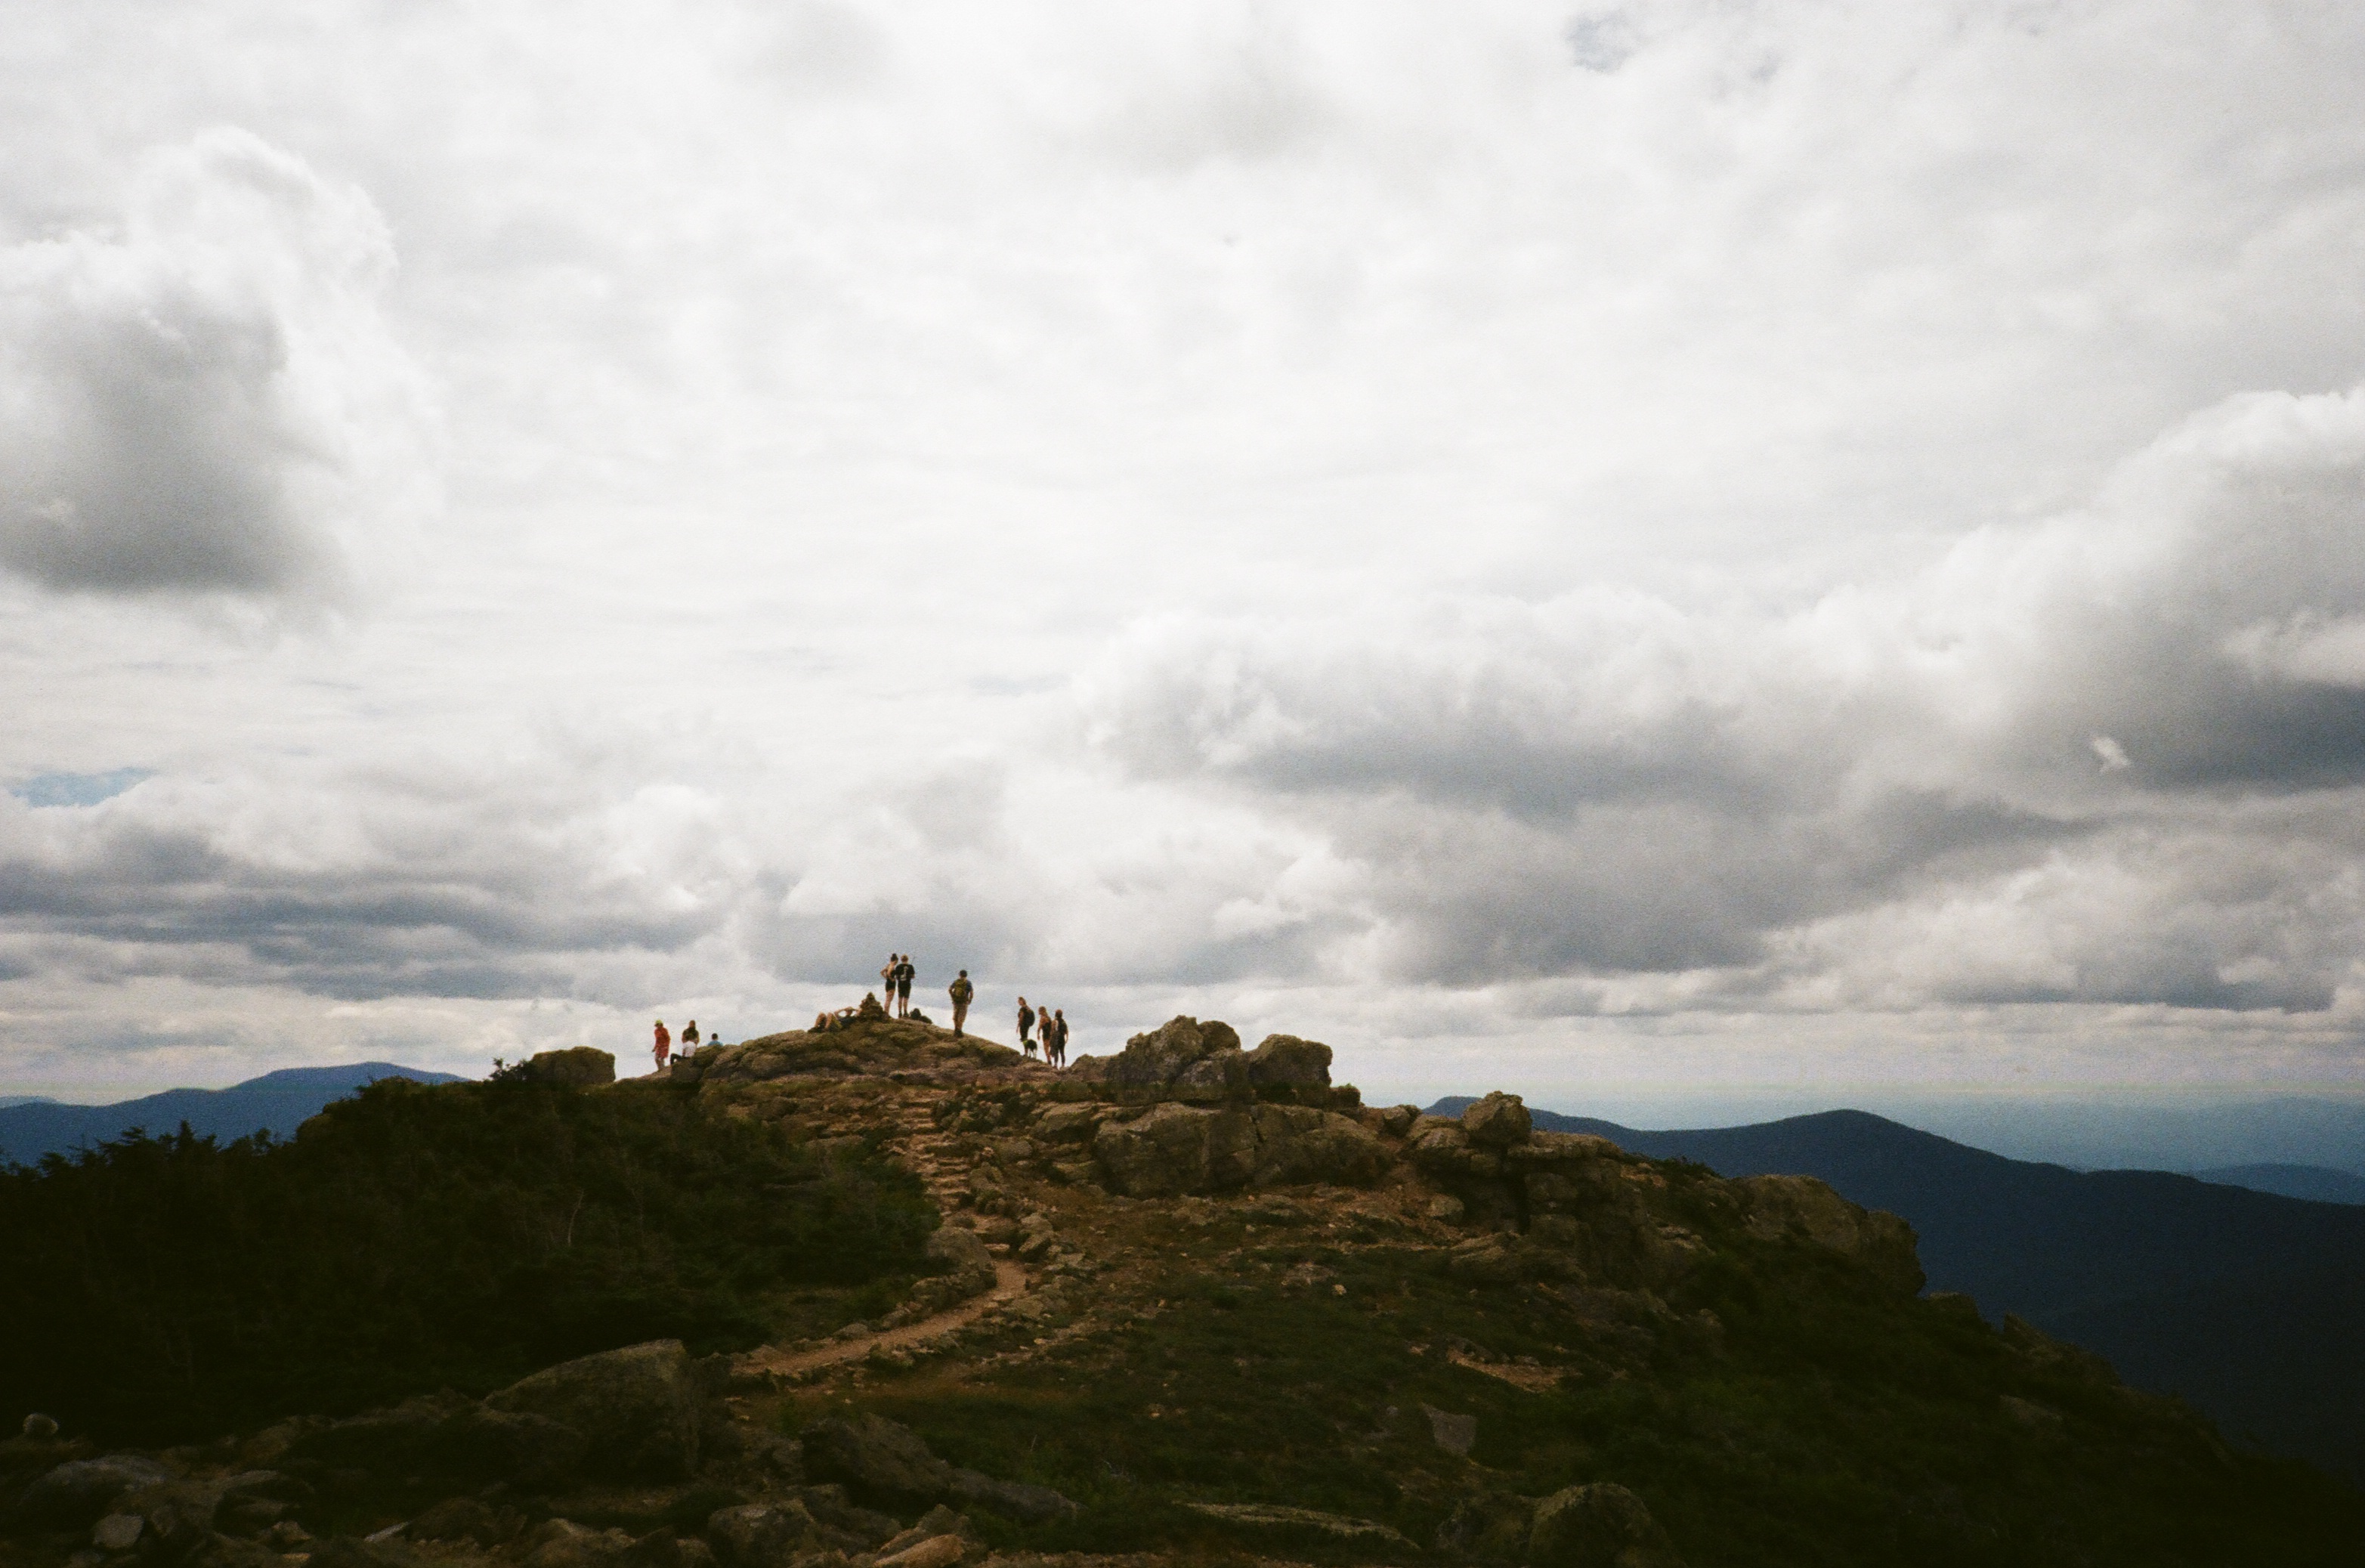 Kodak Gold 200 shot on Olympus XA2 at the White Mountains in New Hampshire